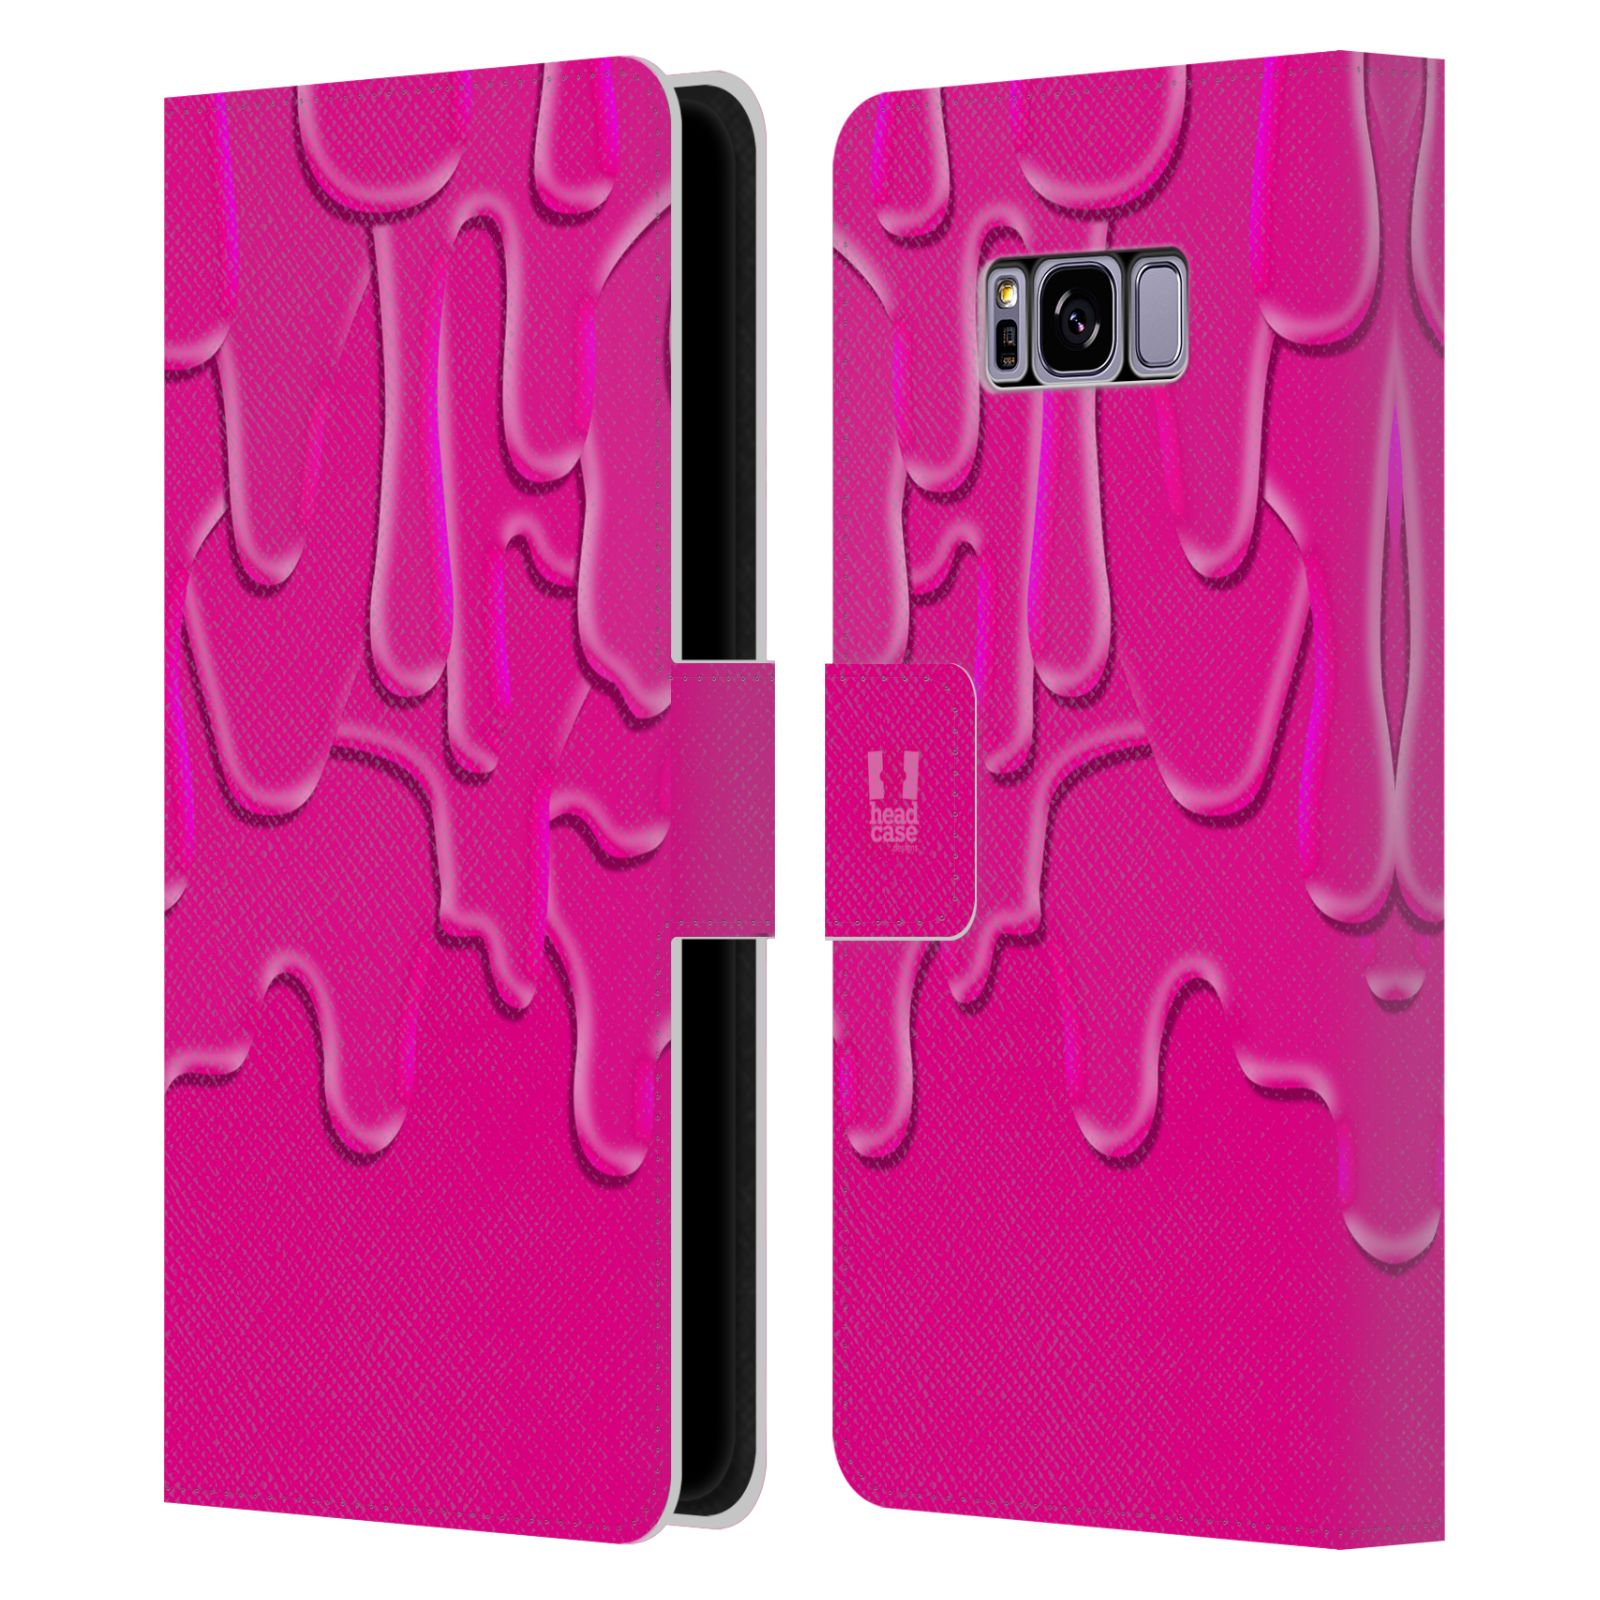 HEAD-CASE-DESIGNS-COLATA-CMYK-COVER-A-PORTAFOGLIO-PER-SAMSUNG-GALAXY-S8-S8-PLUS